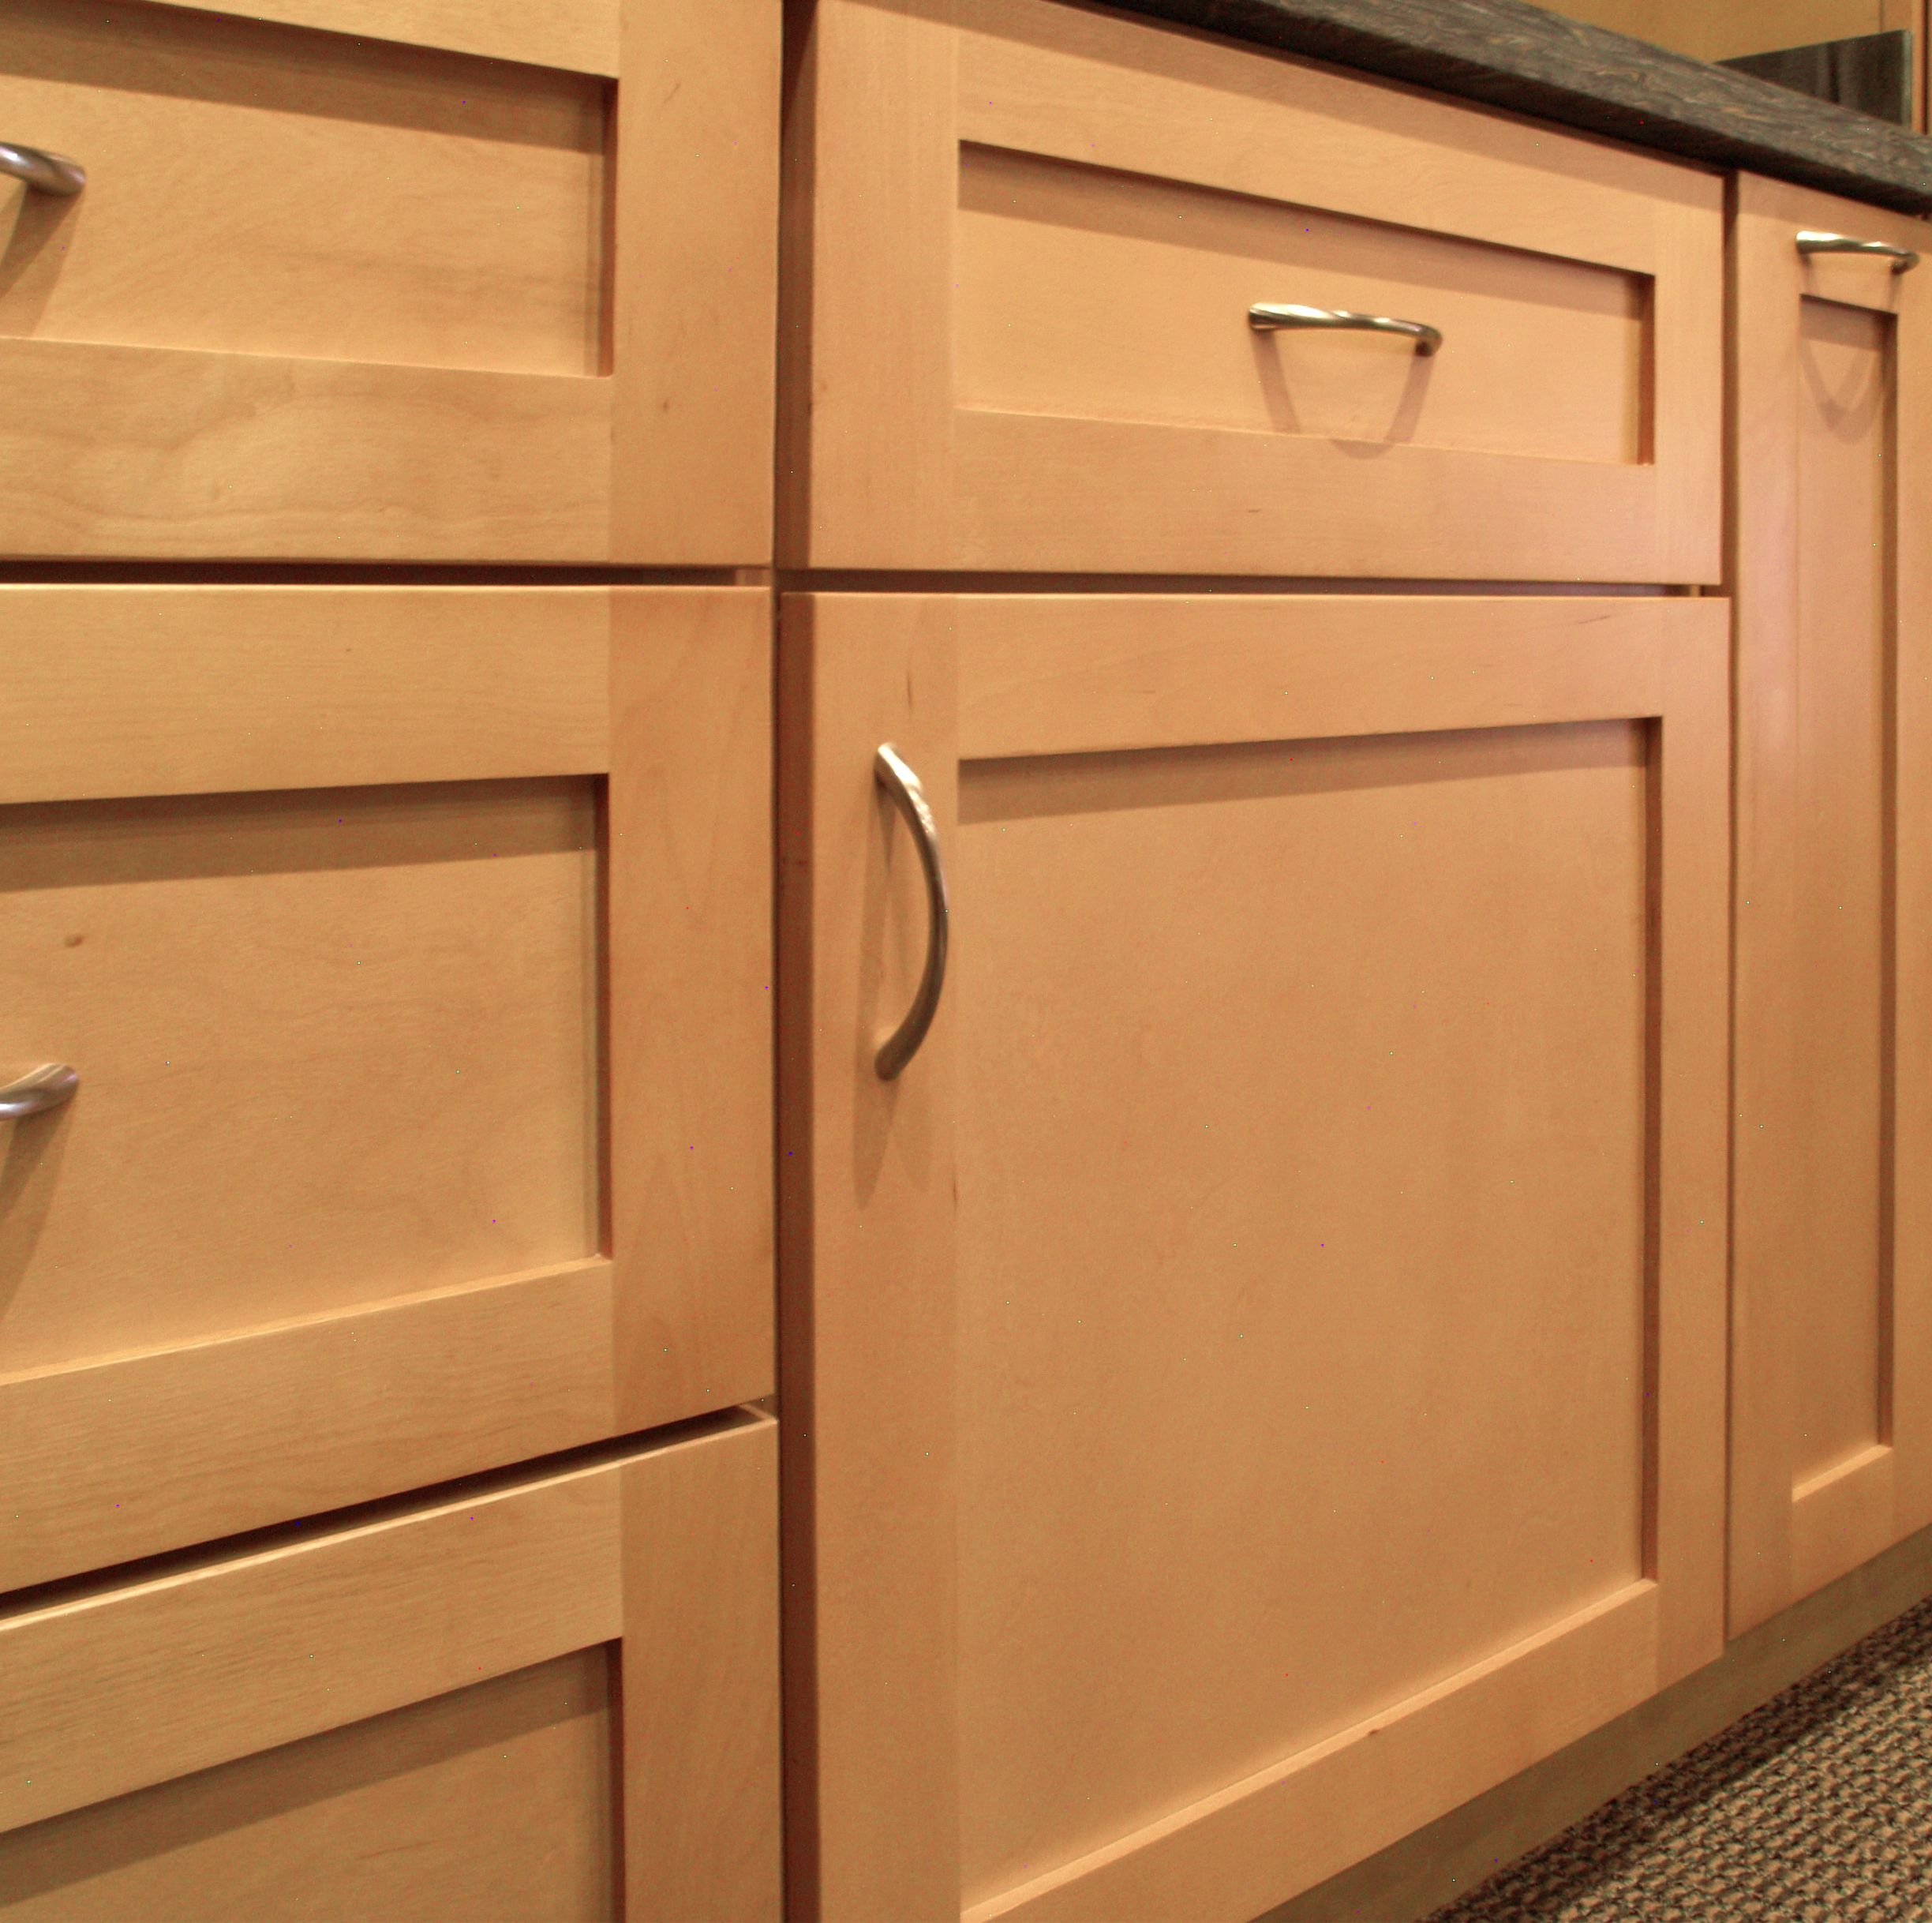 sonoma natural maple shaker style door features a 5 piece drawer front opposed to a slab